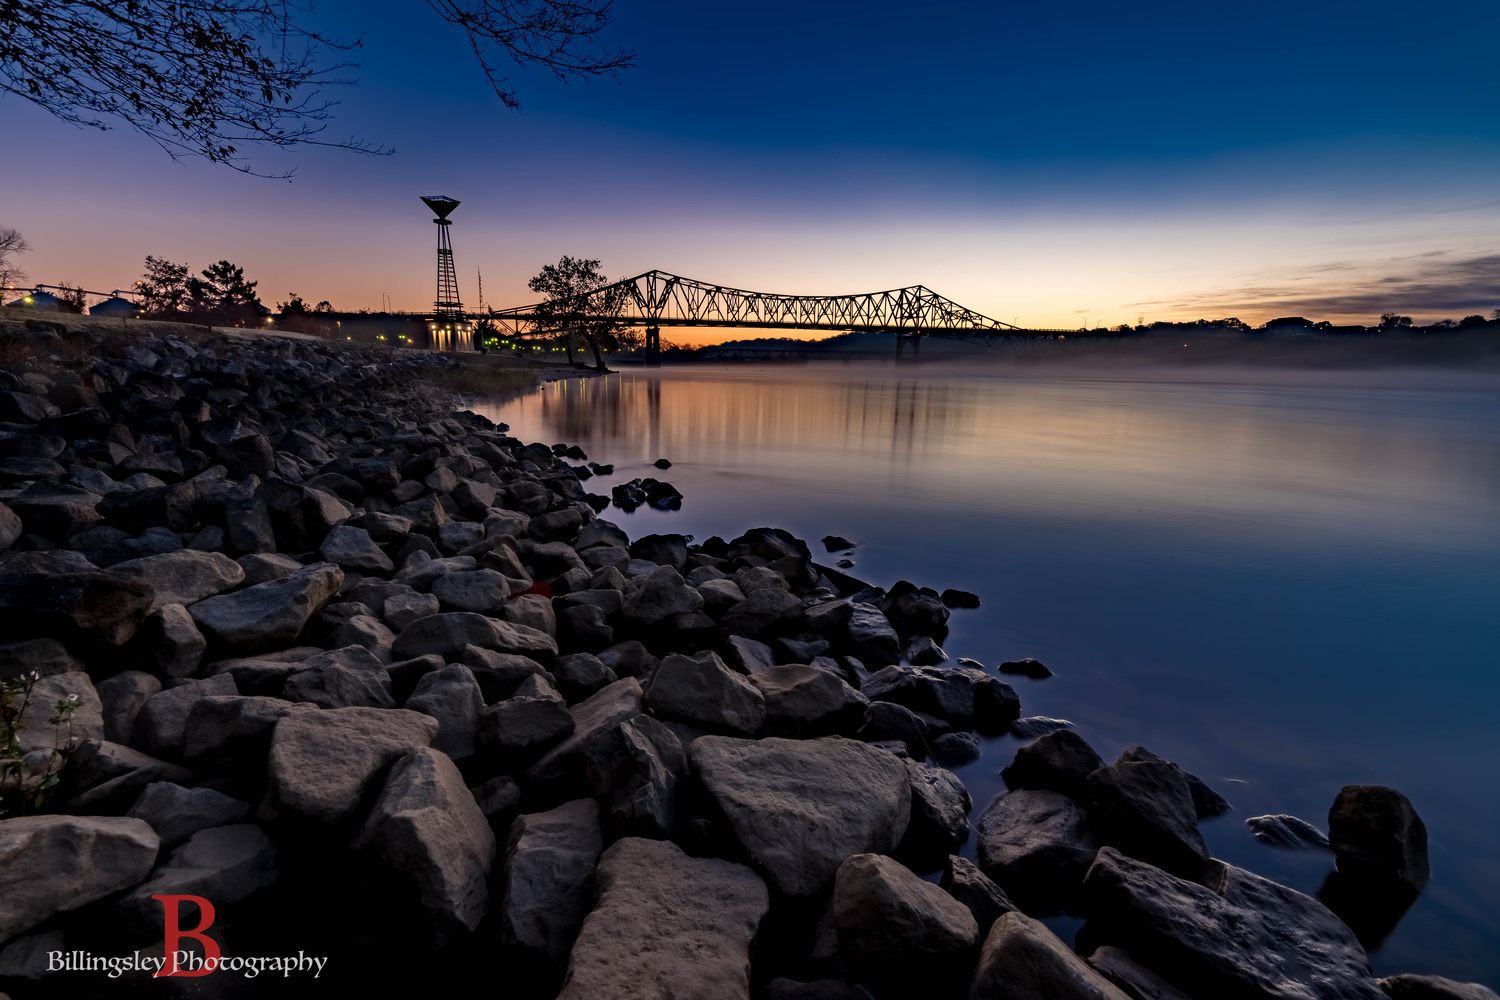 The Beautiful Tennessee River by Cliff Billingsley